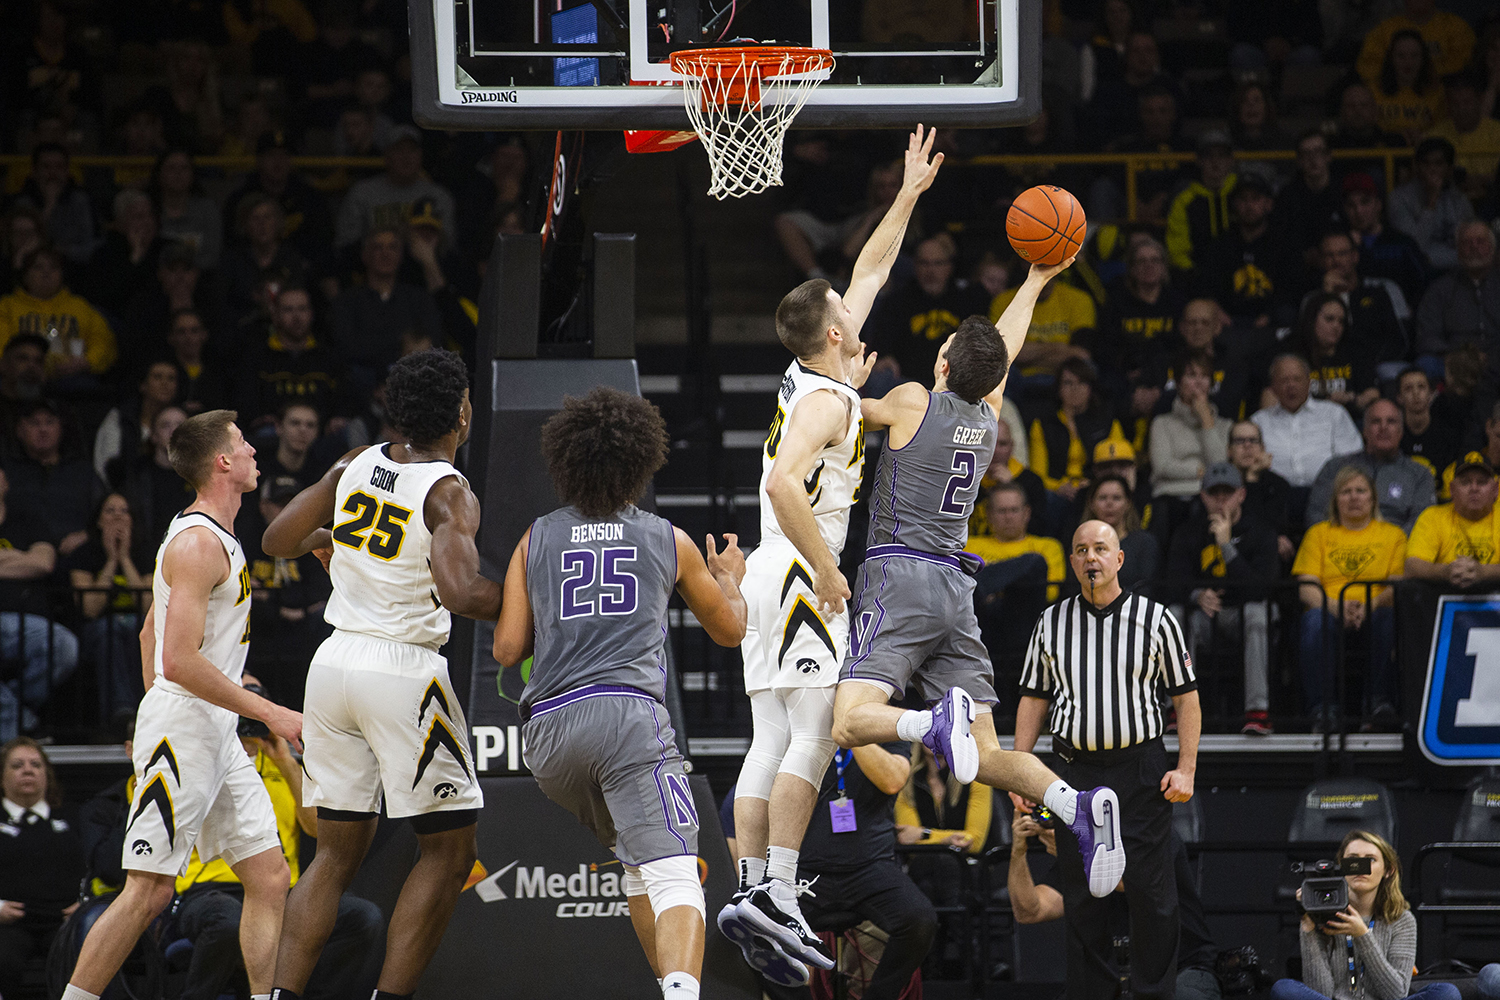 Iowa+guard+Connor+McCaffery+attempts+to+block+Northwestern+guard+Ryan+Greer%27s+shot++during+the+Iowa%2FNorthwestern+men%27s+basketball+game+at+Carver-Hawkeye+Arena+on+Sunday%2C+February+10%2C+2019.+The+Hawkeyes+defeated+the+Wildcats%2C+80-79.+